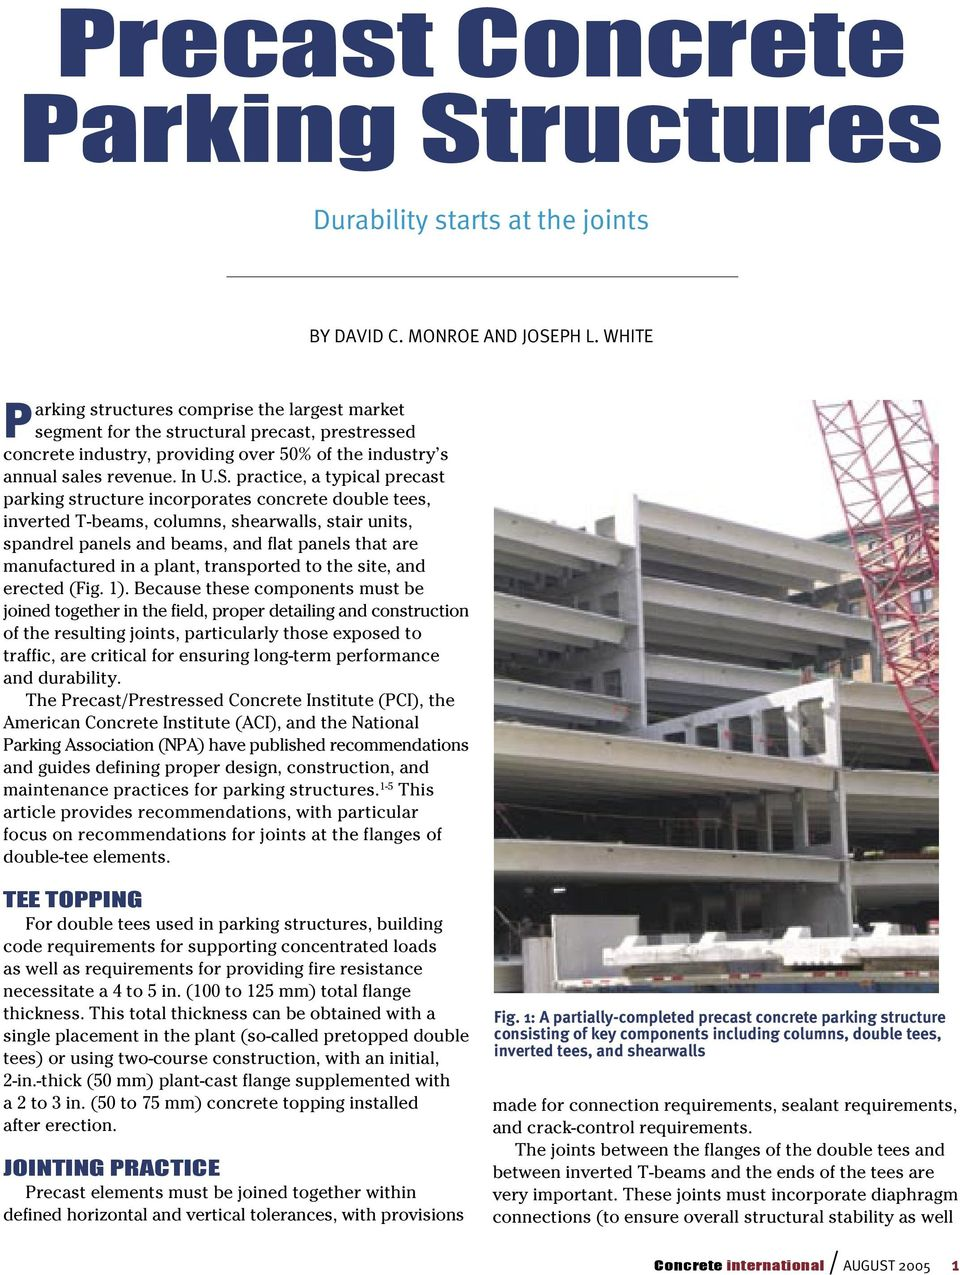 practice, a typical precast parking structure incorporates concrete double tees, inverted T-beams, columns, shearwalls, stair units, spandrel panels and beams, and flat panels that are manufactured